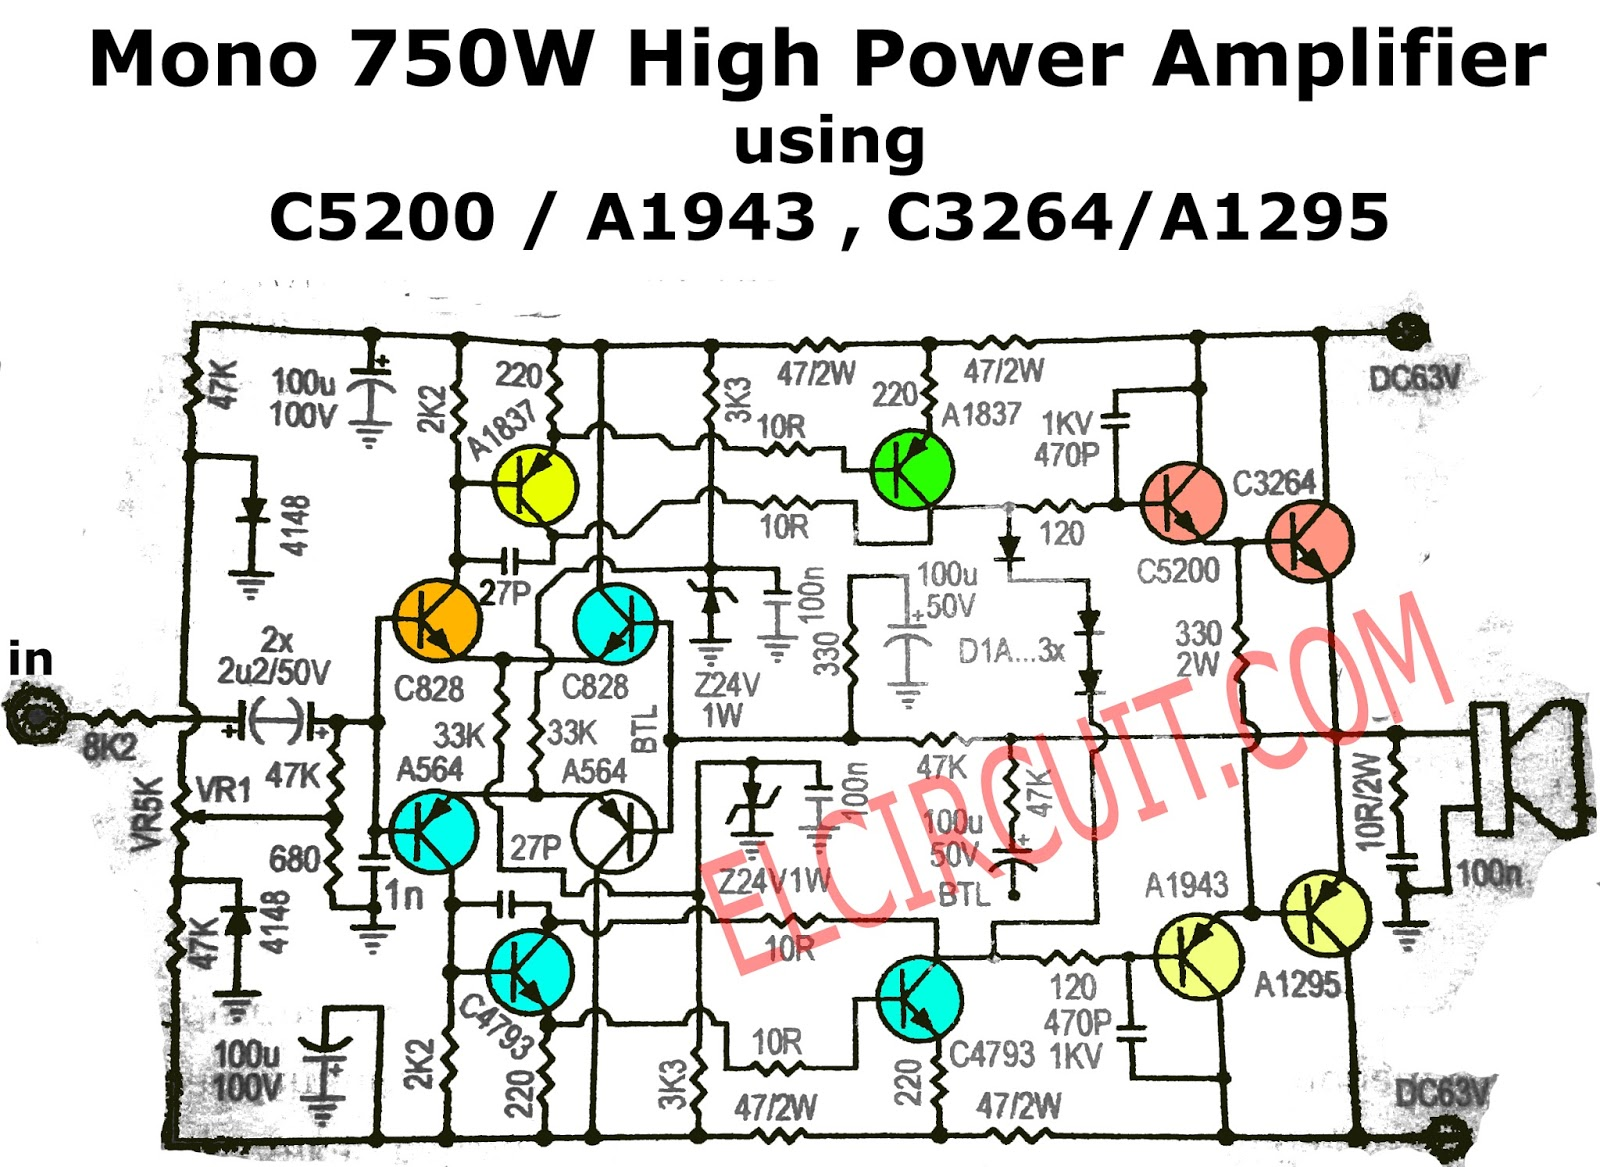 for a bass amp power wire diagram wiring diagram centrewrg 2228 bass amp wiring diagramfor [ 1600 x 1167 Pixel ]